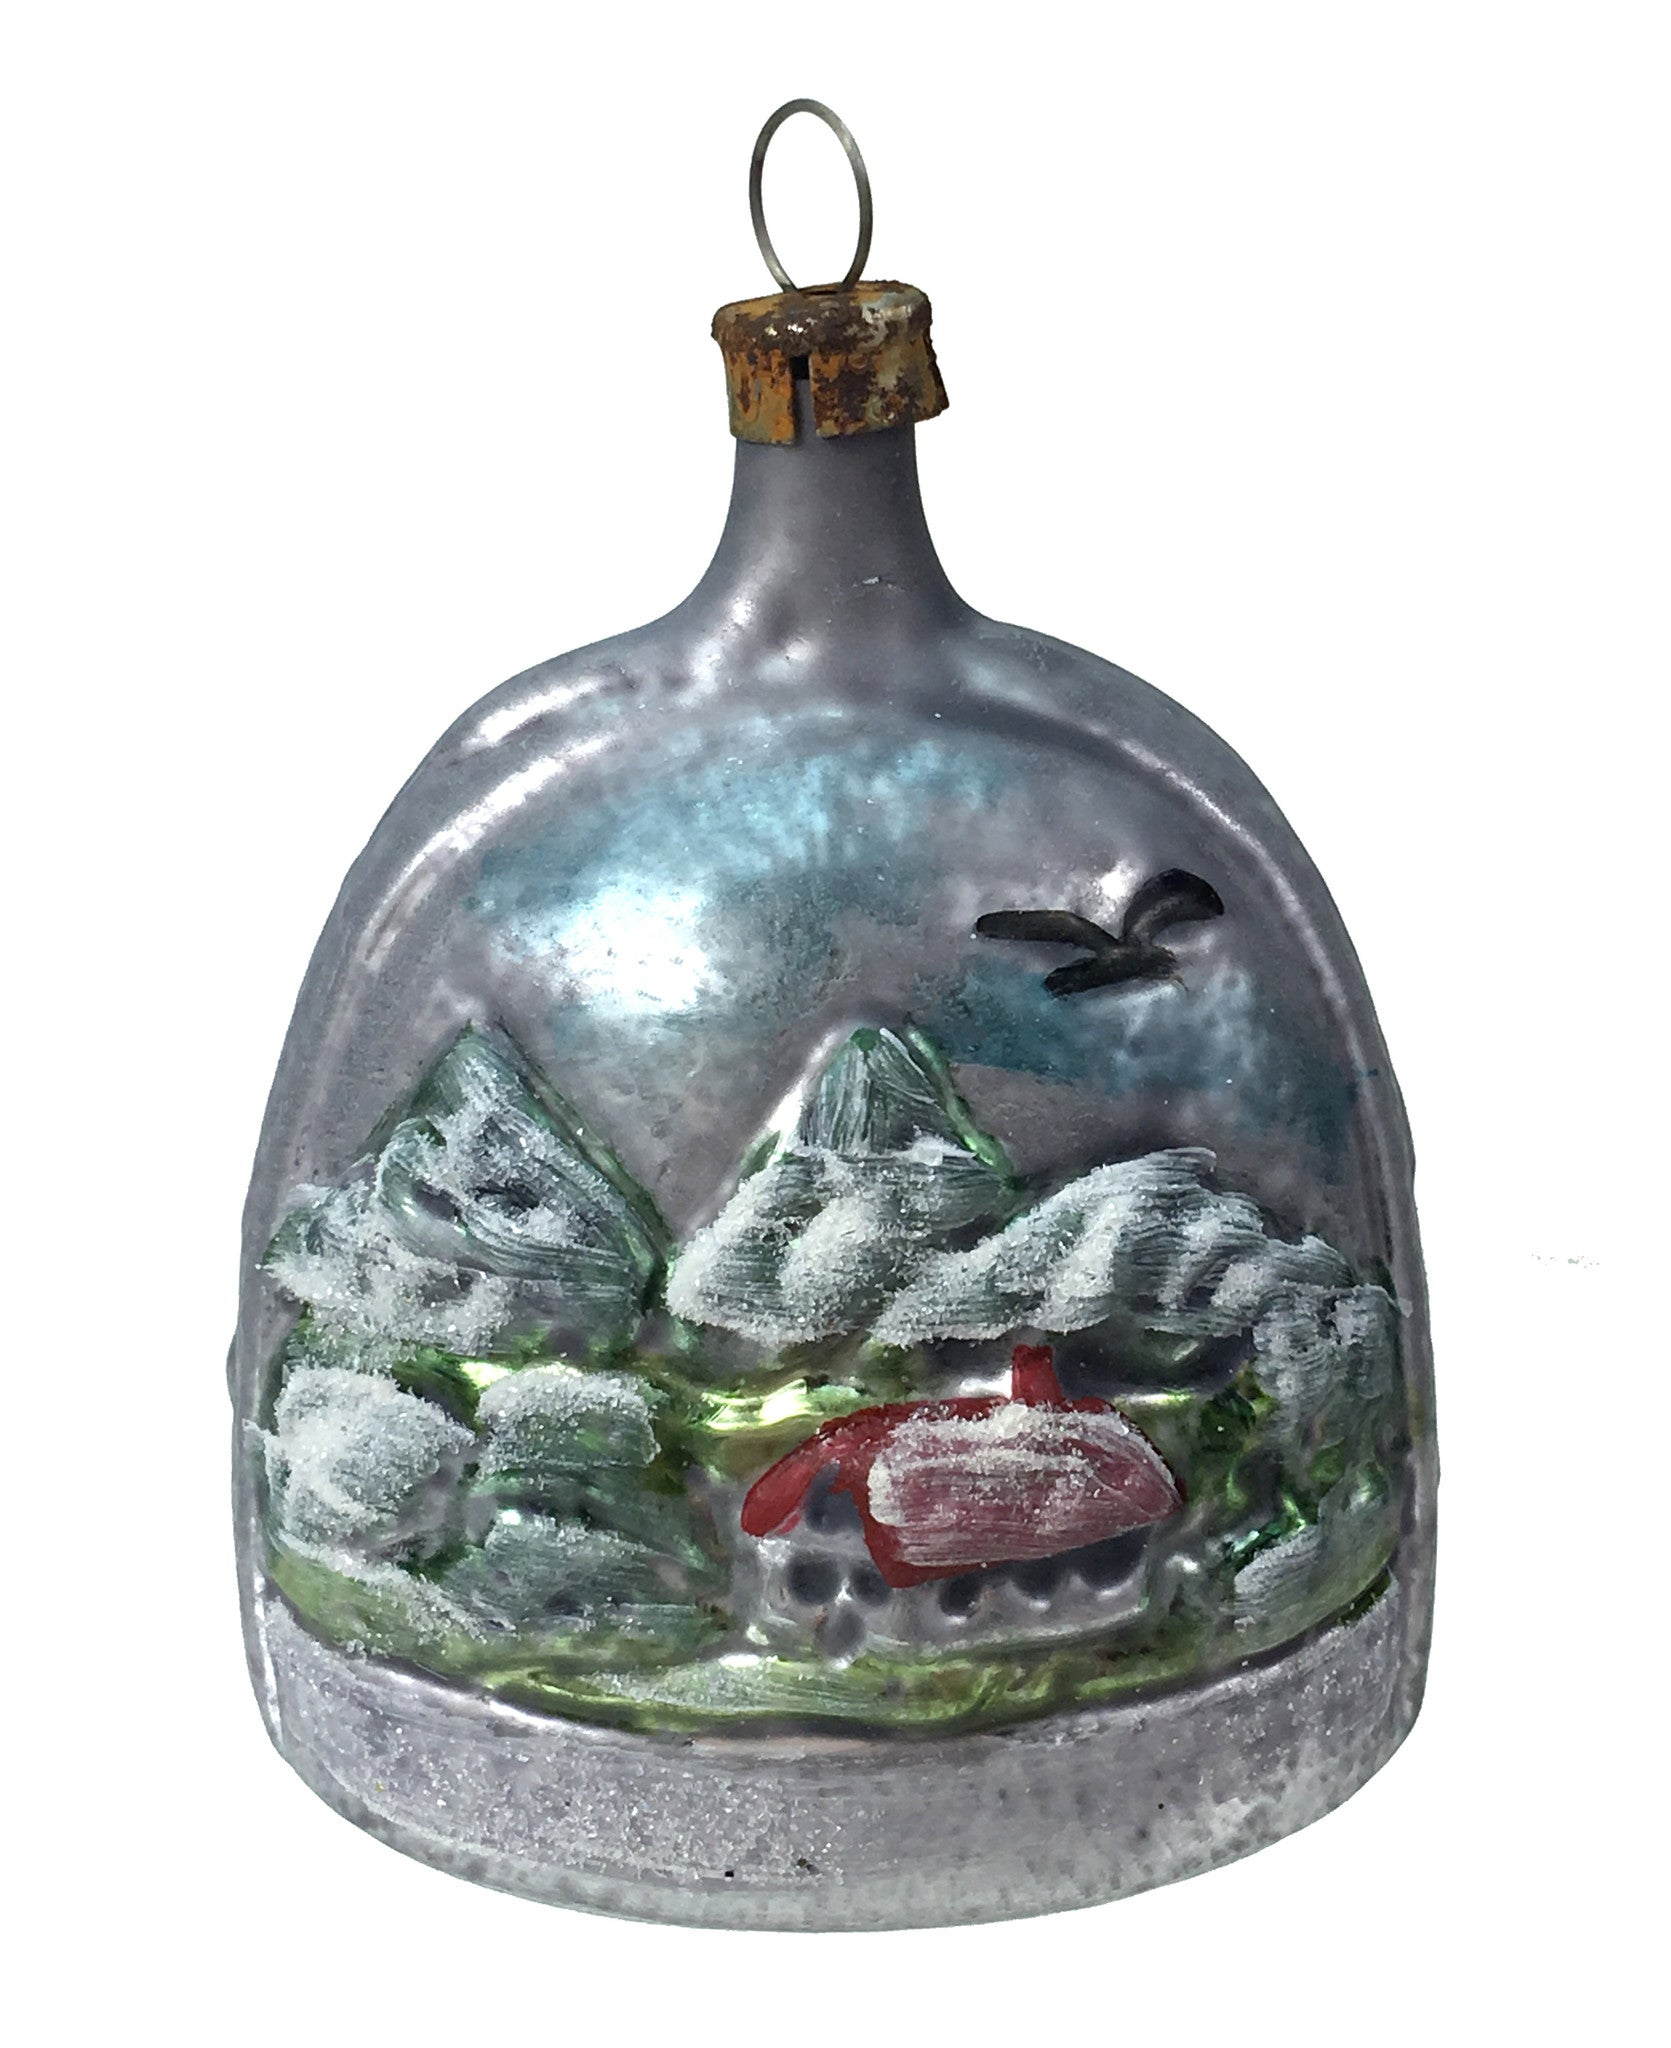 Vintage Patina German Winter Bell Ornament with Mountain Village Scene